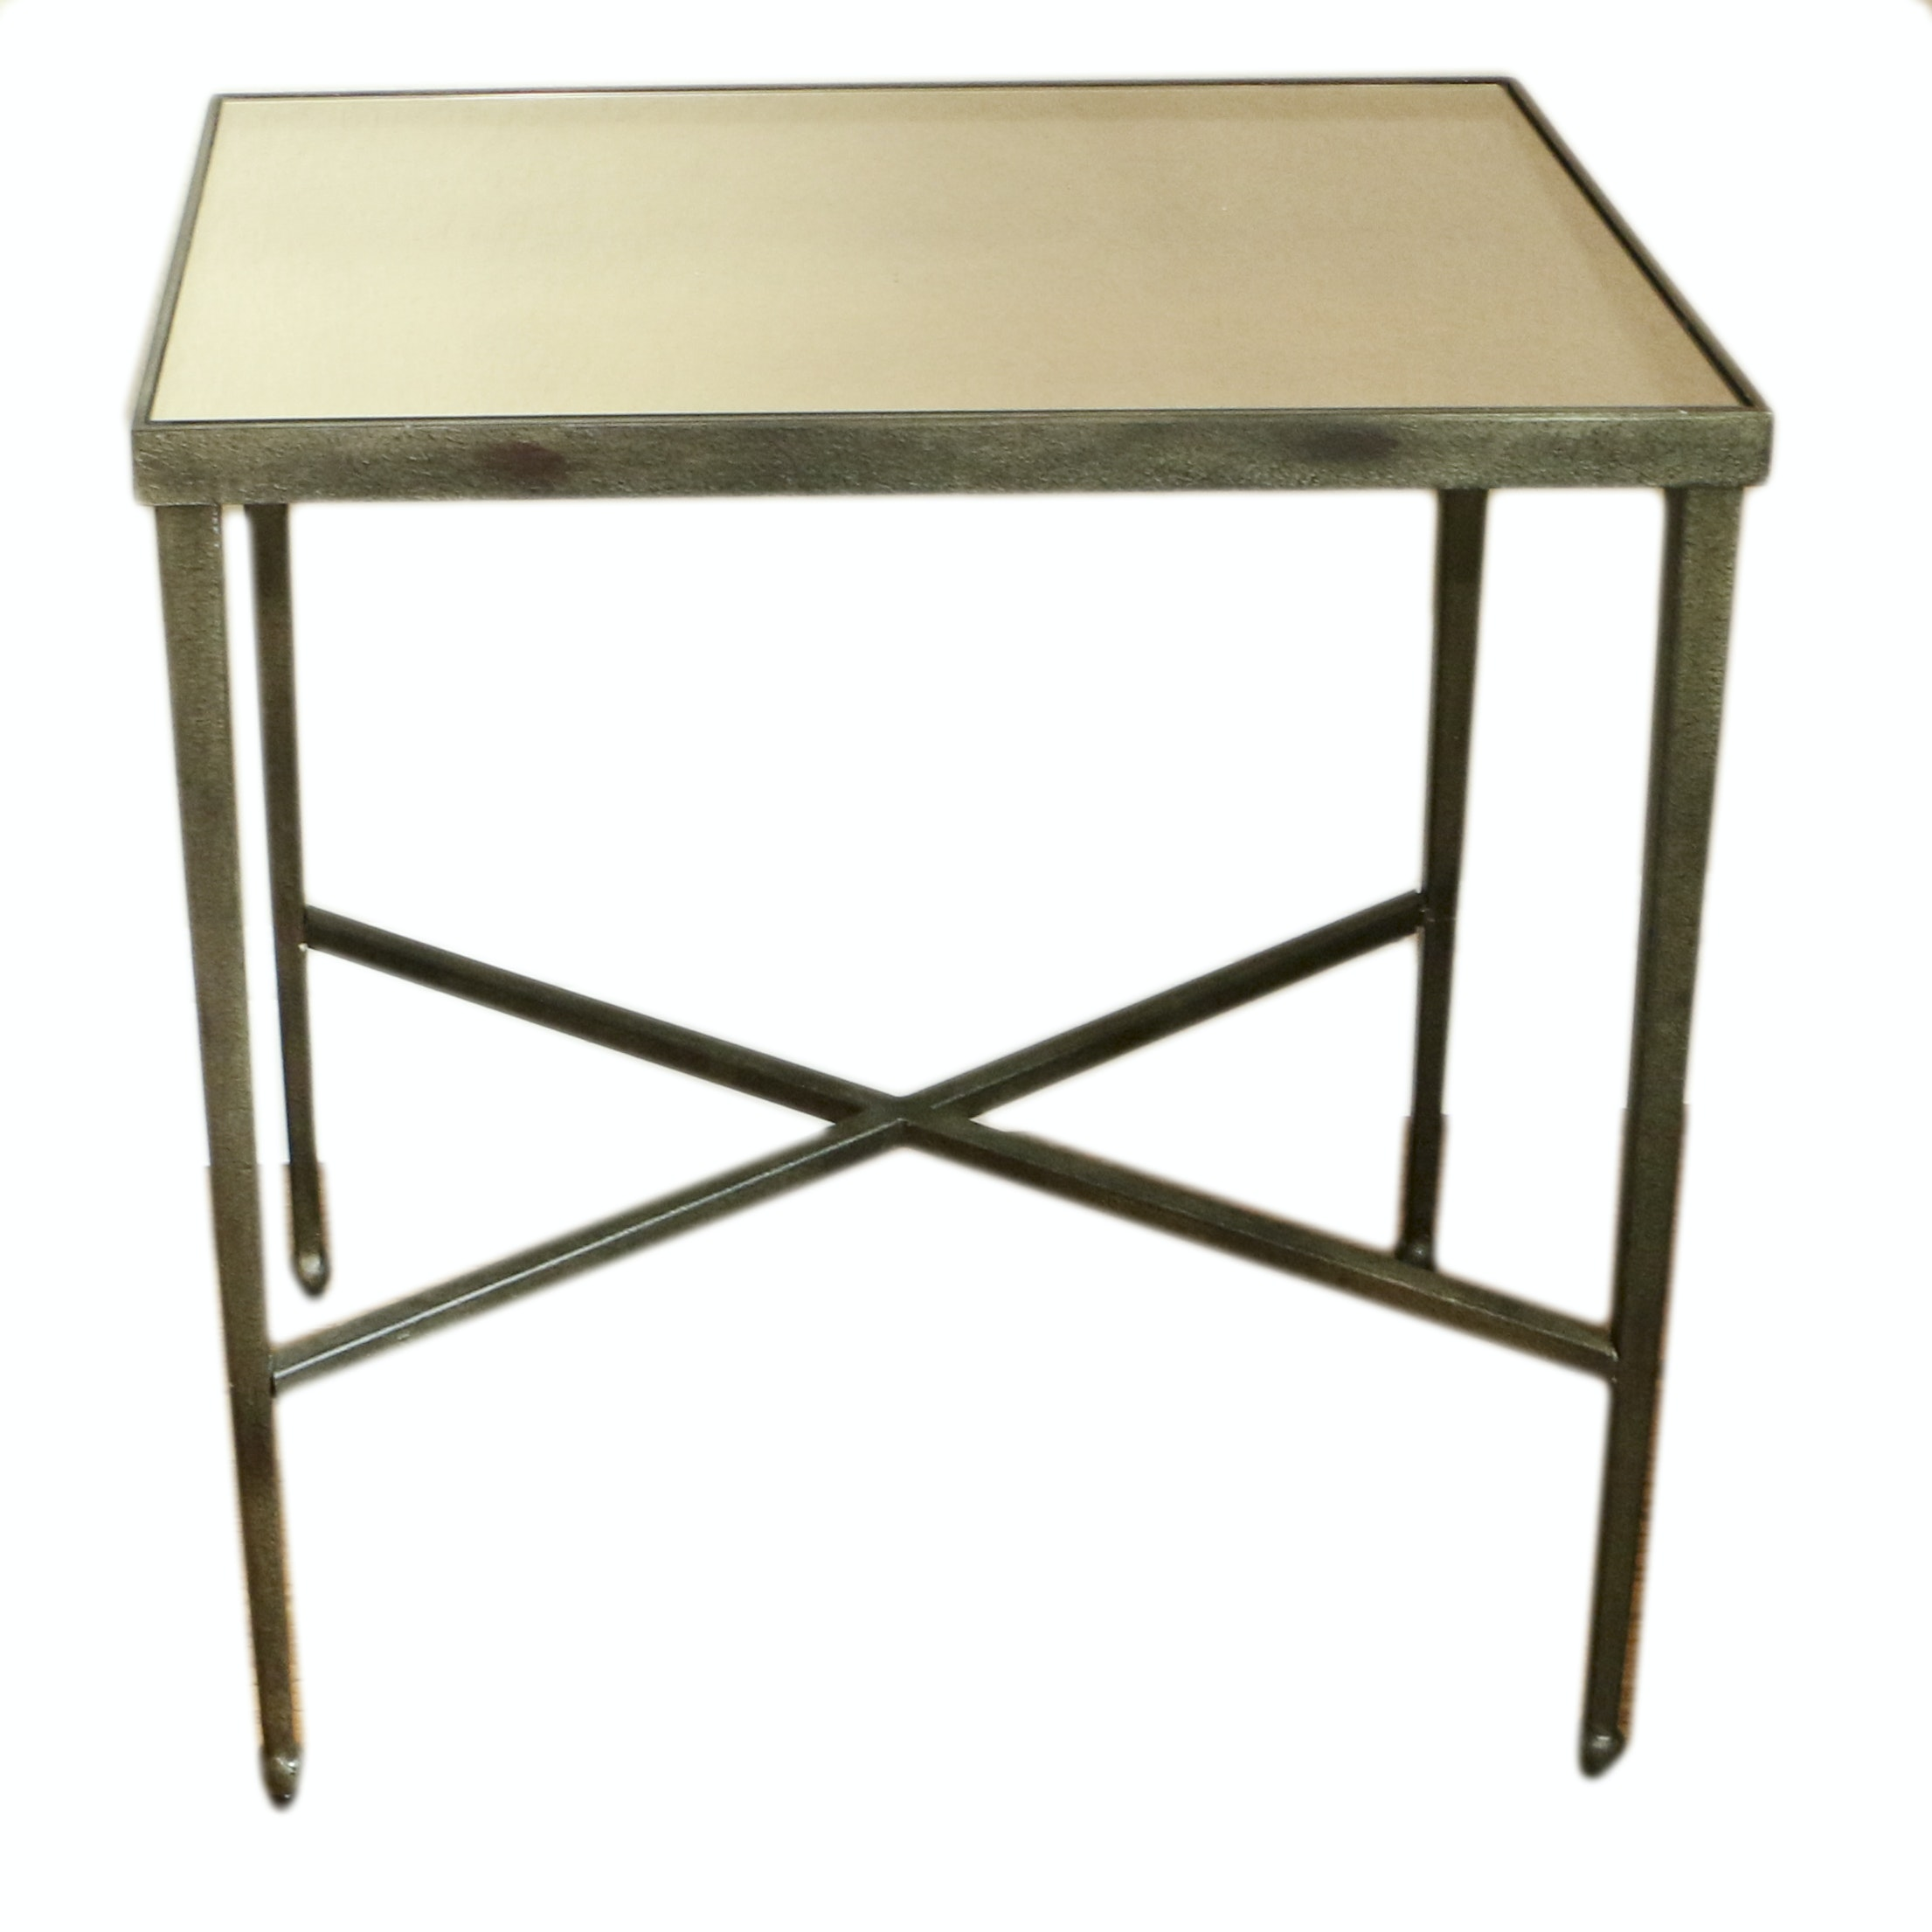 Mirrored Top Metal Side Table